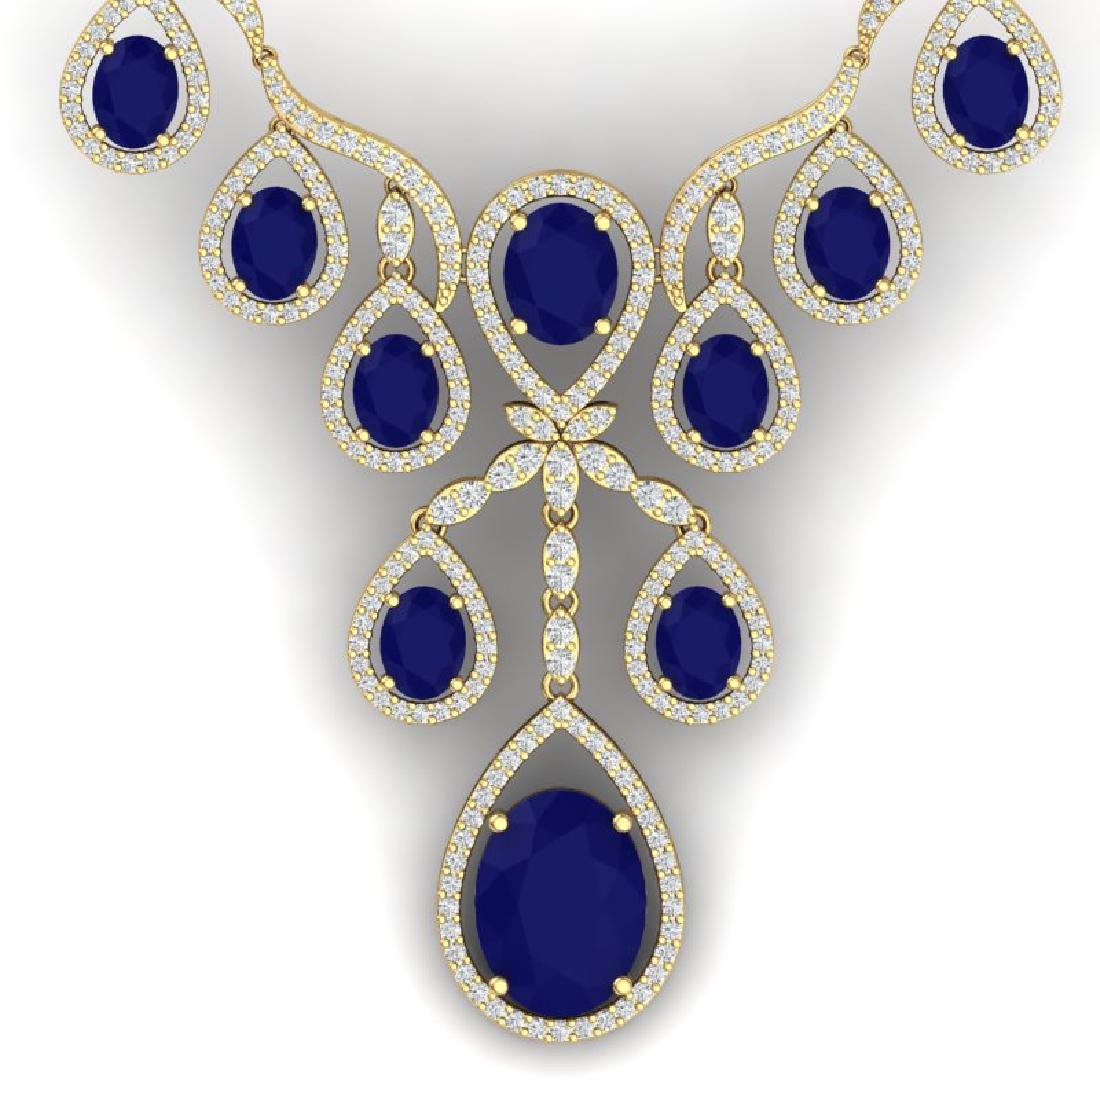 37.66 CTW Royalty Sapphire & VS Diamond Necklace 18K